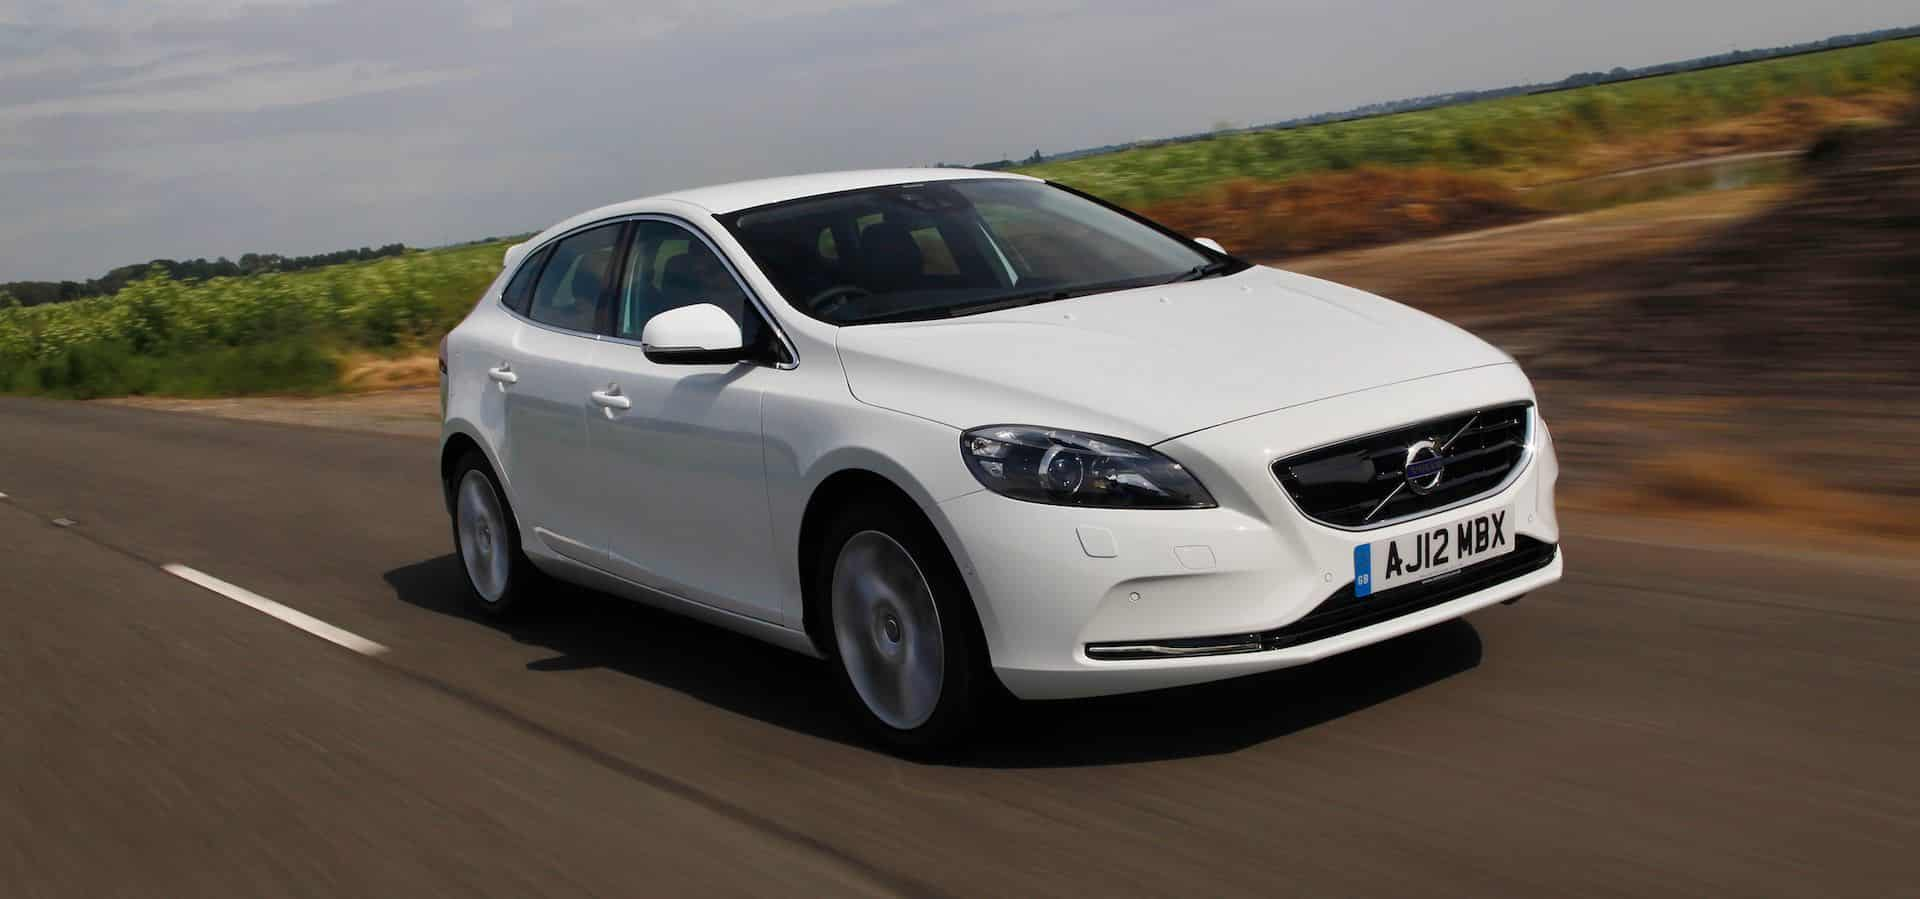 Volvo Car Reviews Volvo V40 Review Car Reviews The Car Expert